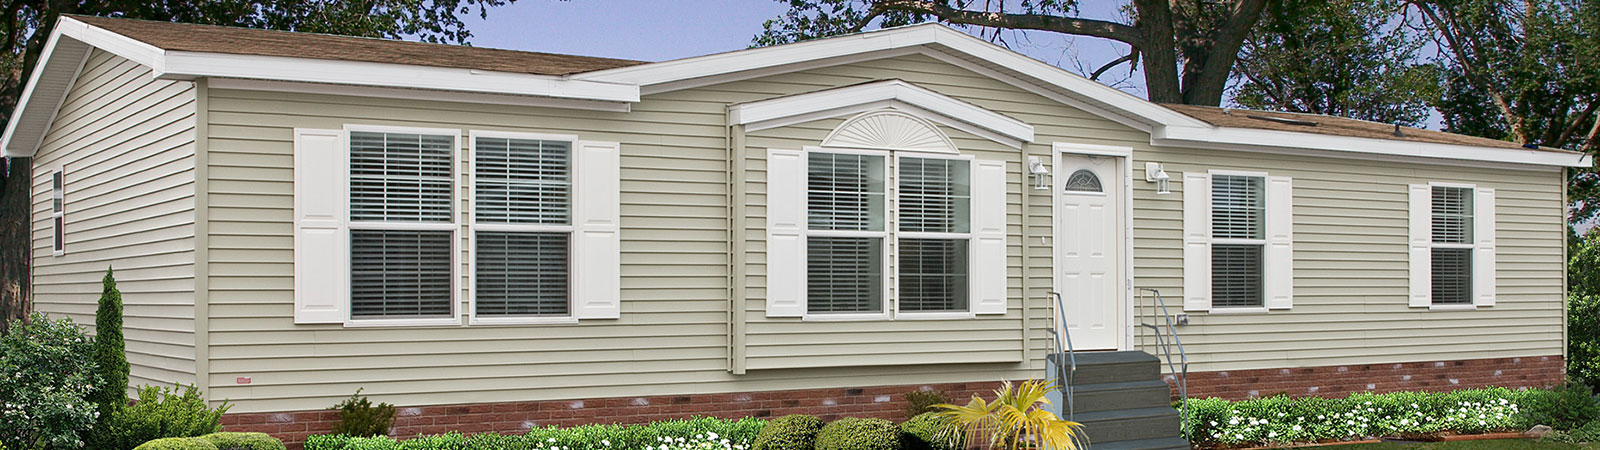 Learn about Benefits of a Manufactured Home